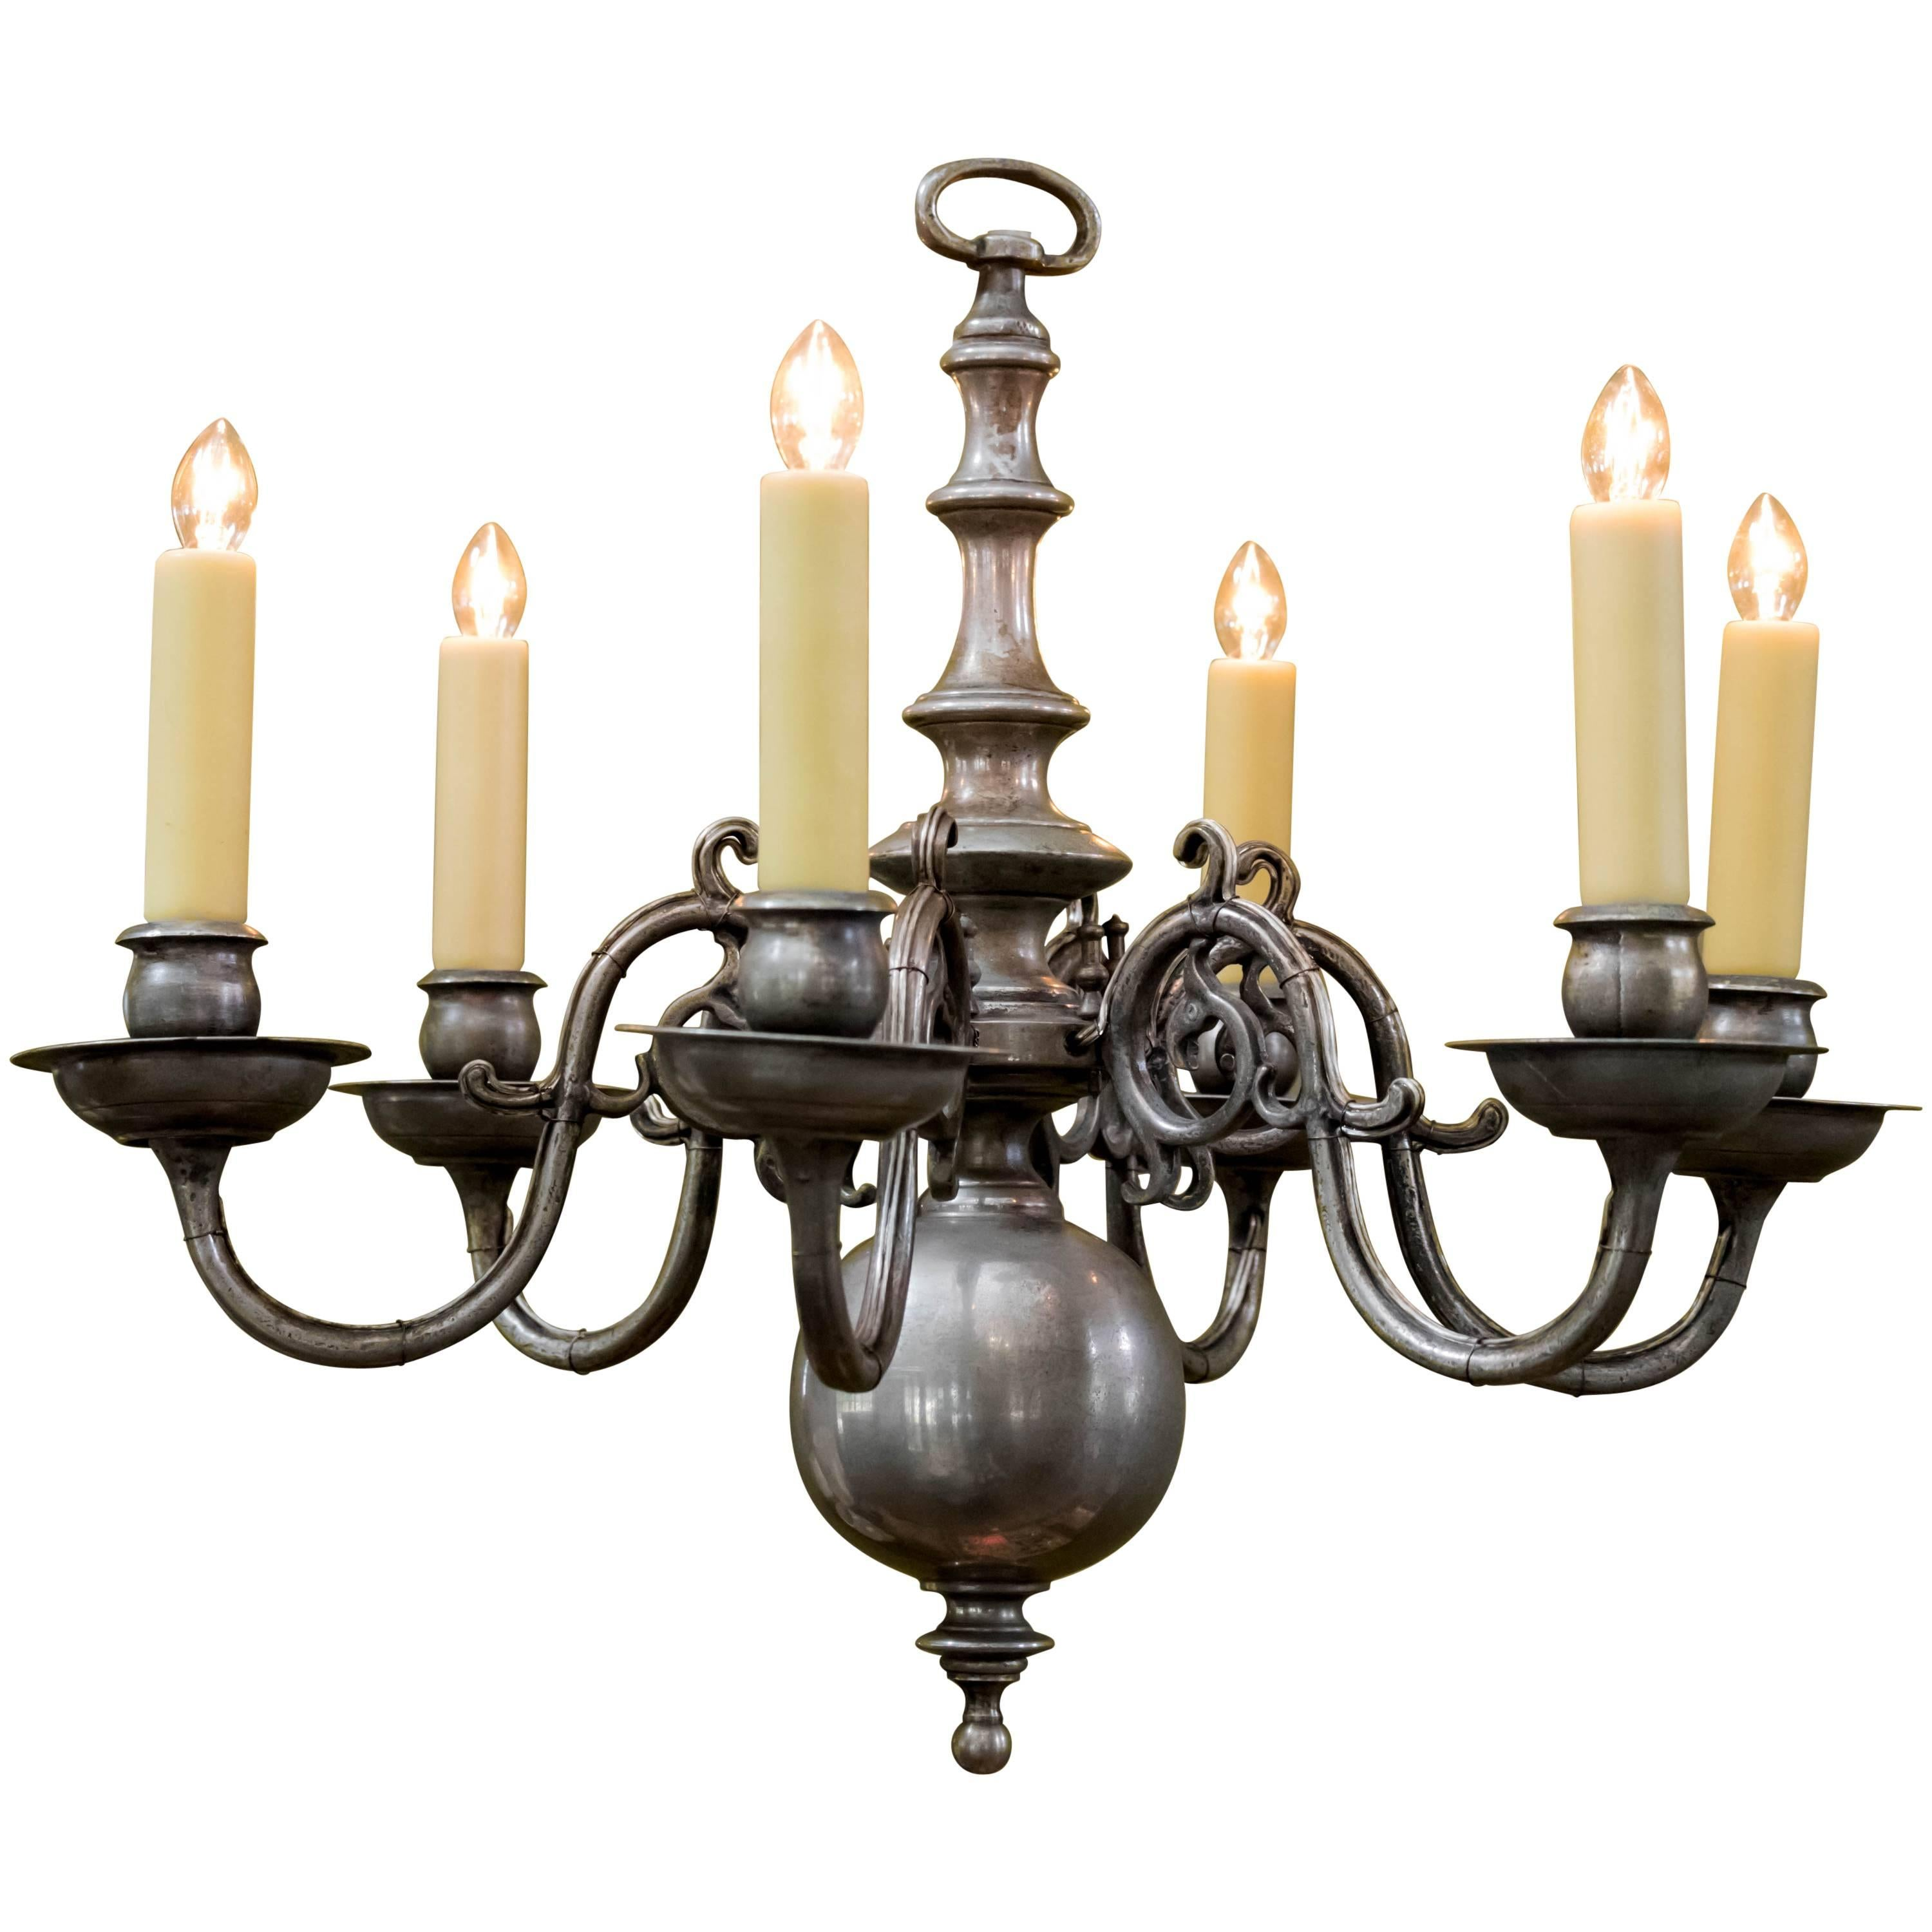 Magnificent Pewter Colored Nickel on Brass Flemish Chandelier